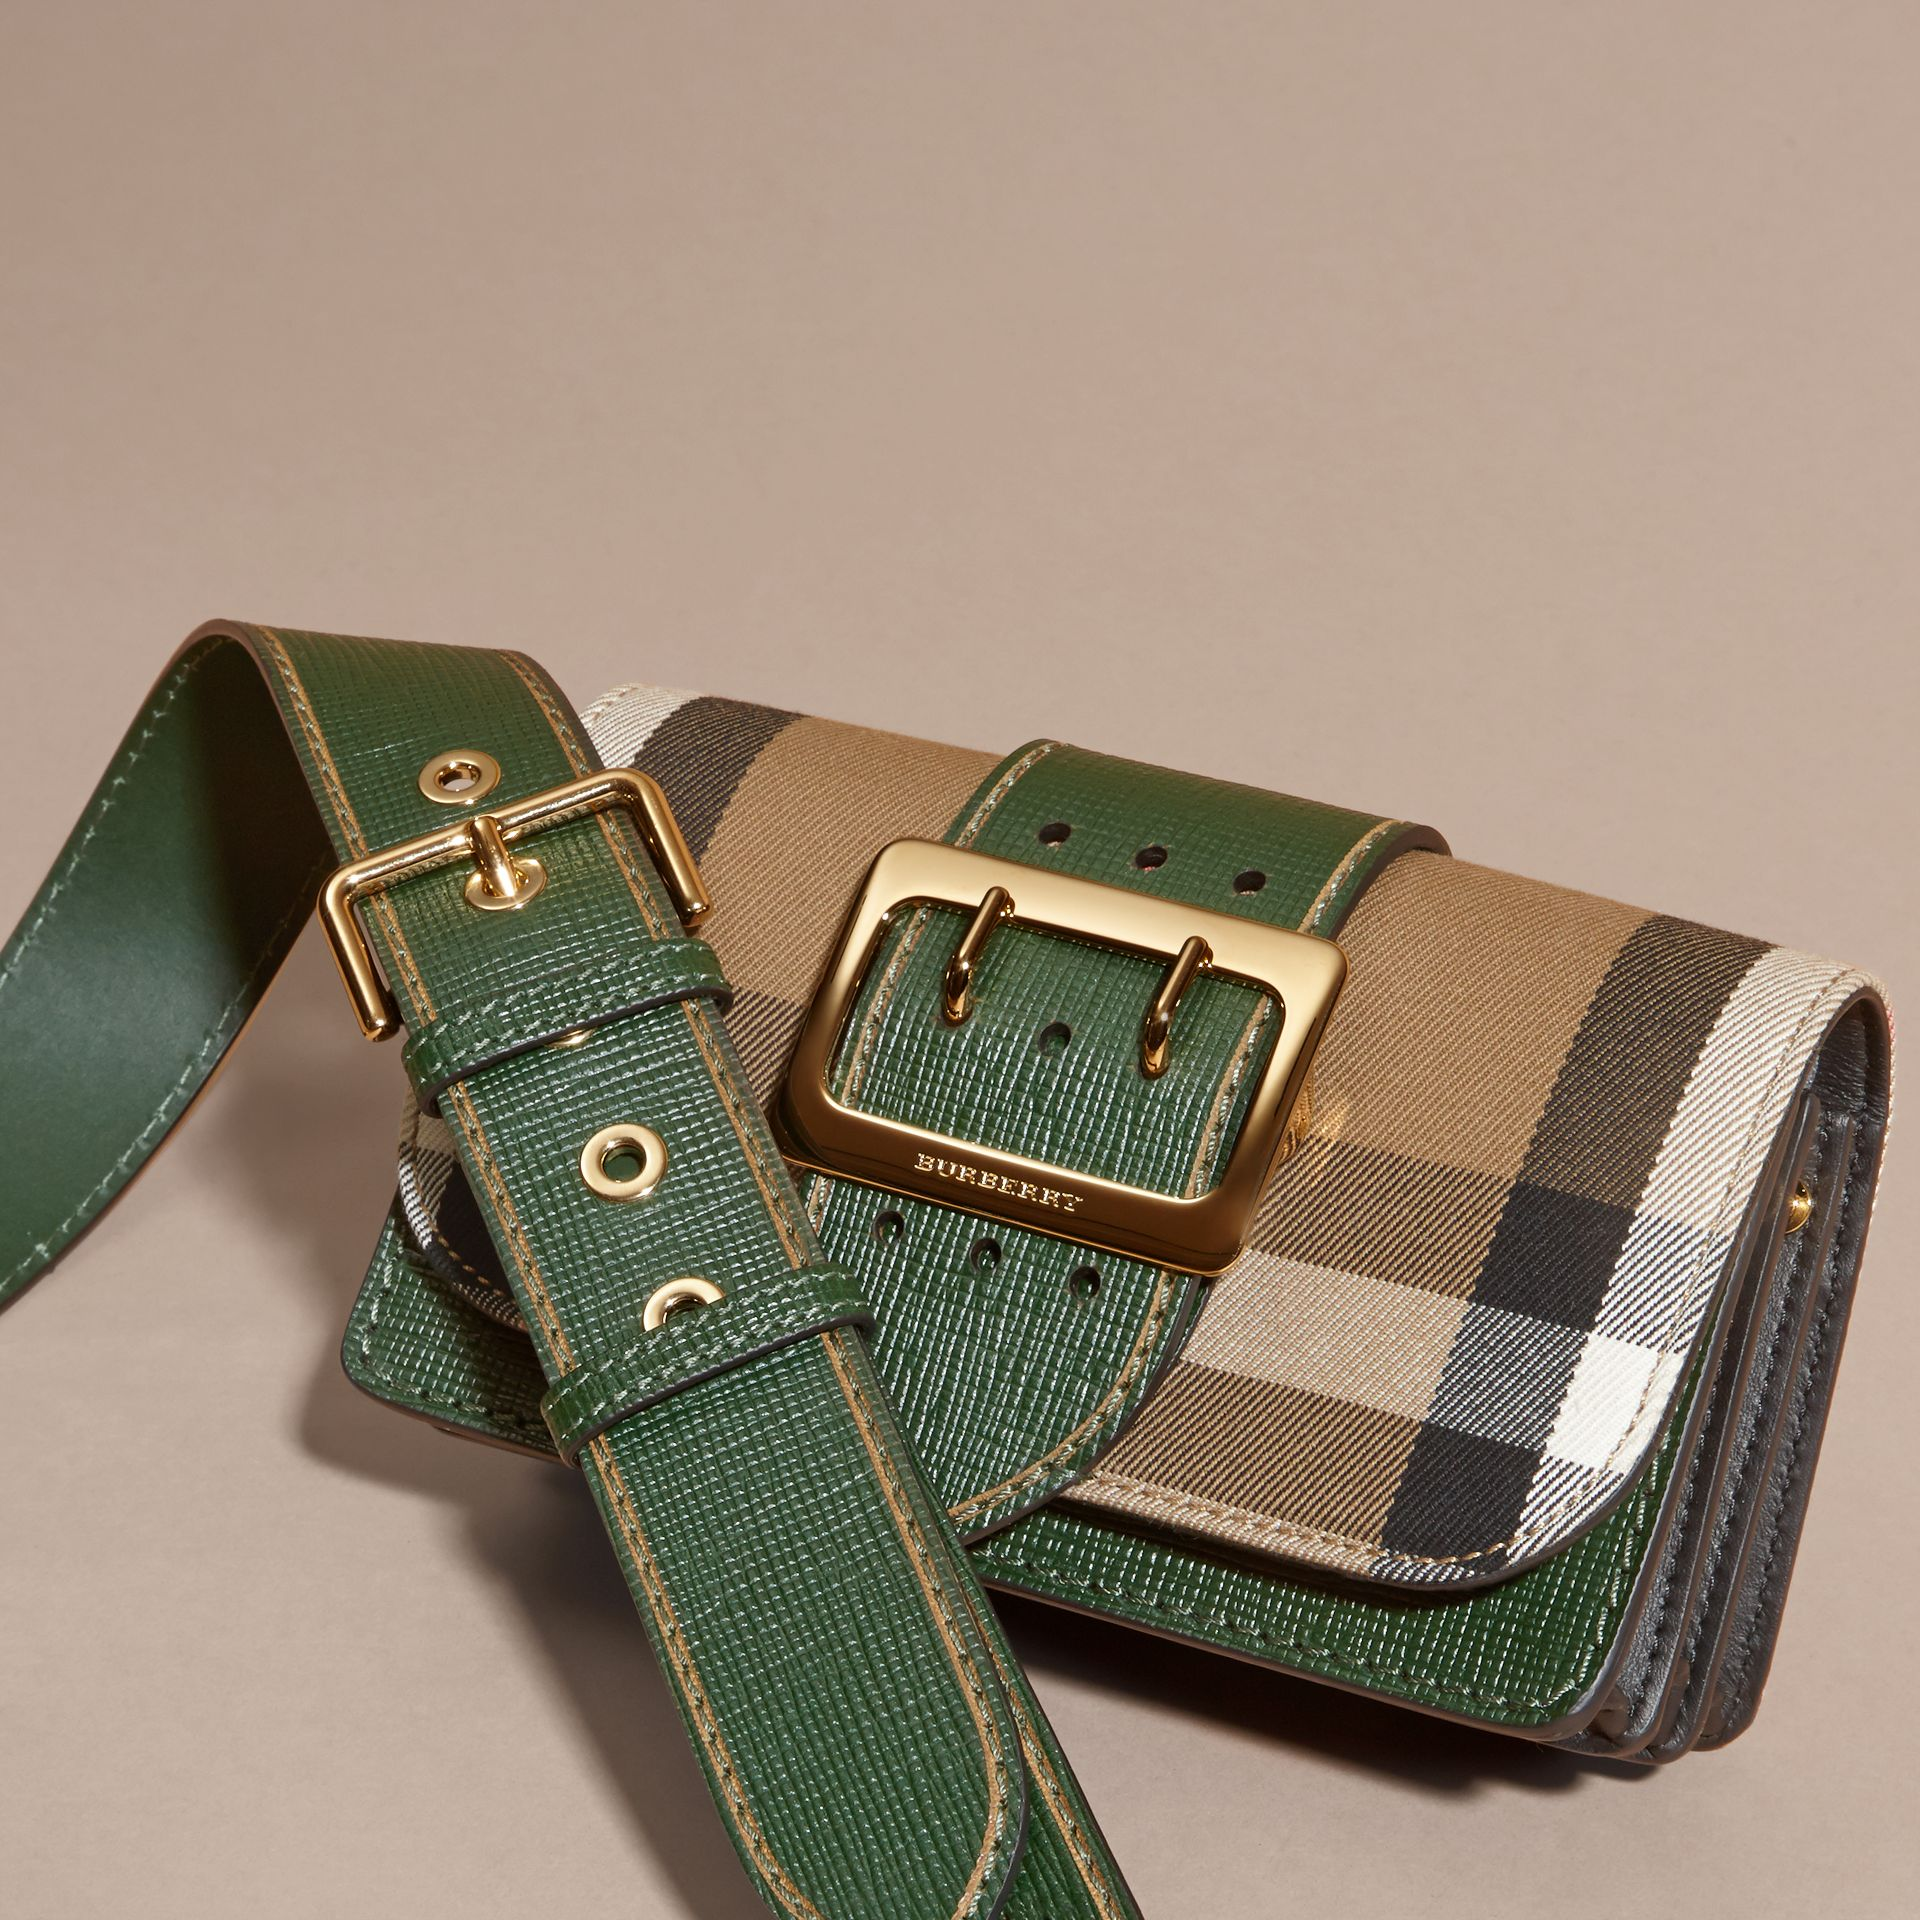 The Small Buckle Bag in House Check and Leather in Kelly Green/kelly Green - Women | Burberry Canada - gallery image 7